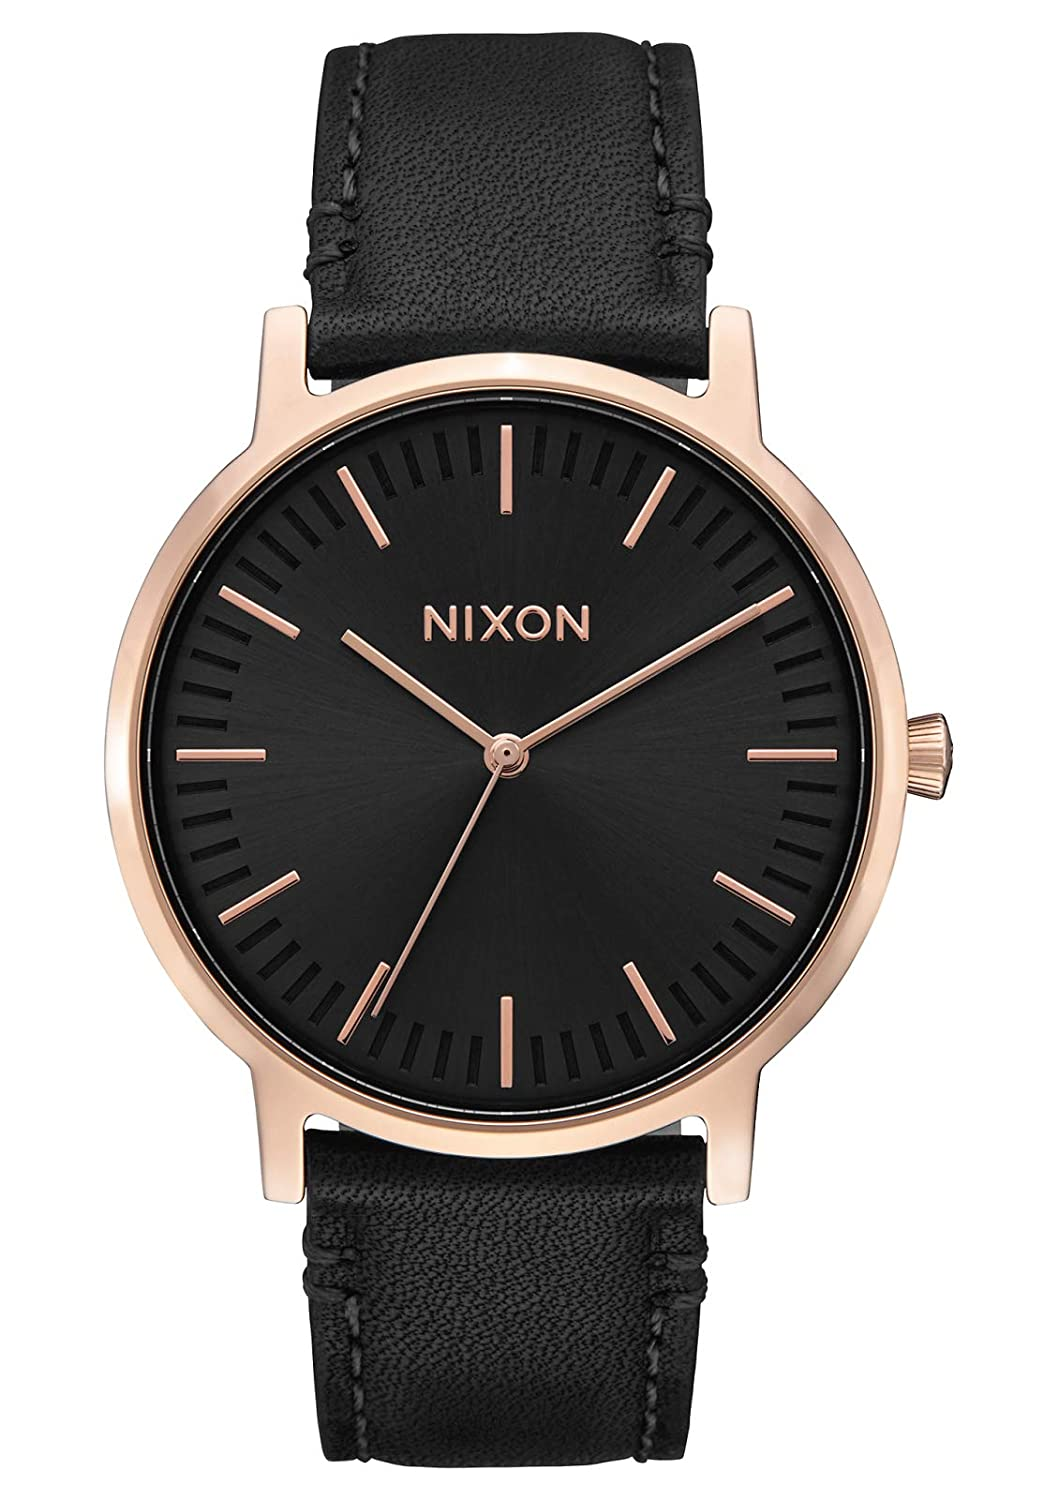 Nixon Porter Leather A1058. 100m Water Resistant Men s Watch 20-18mm Leather Band and 40mm Watch Face